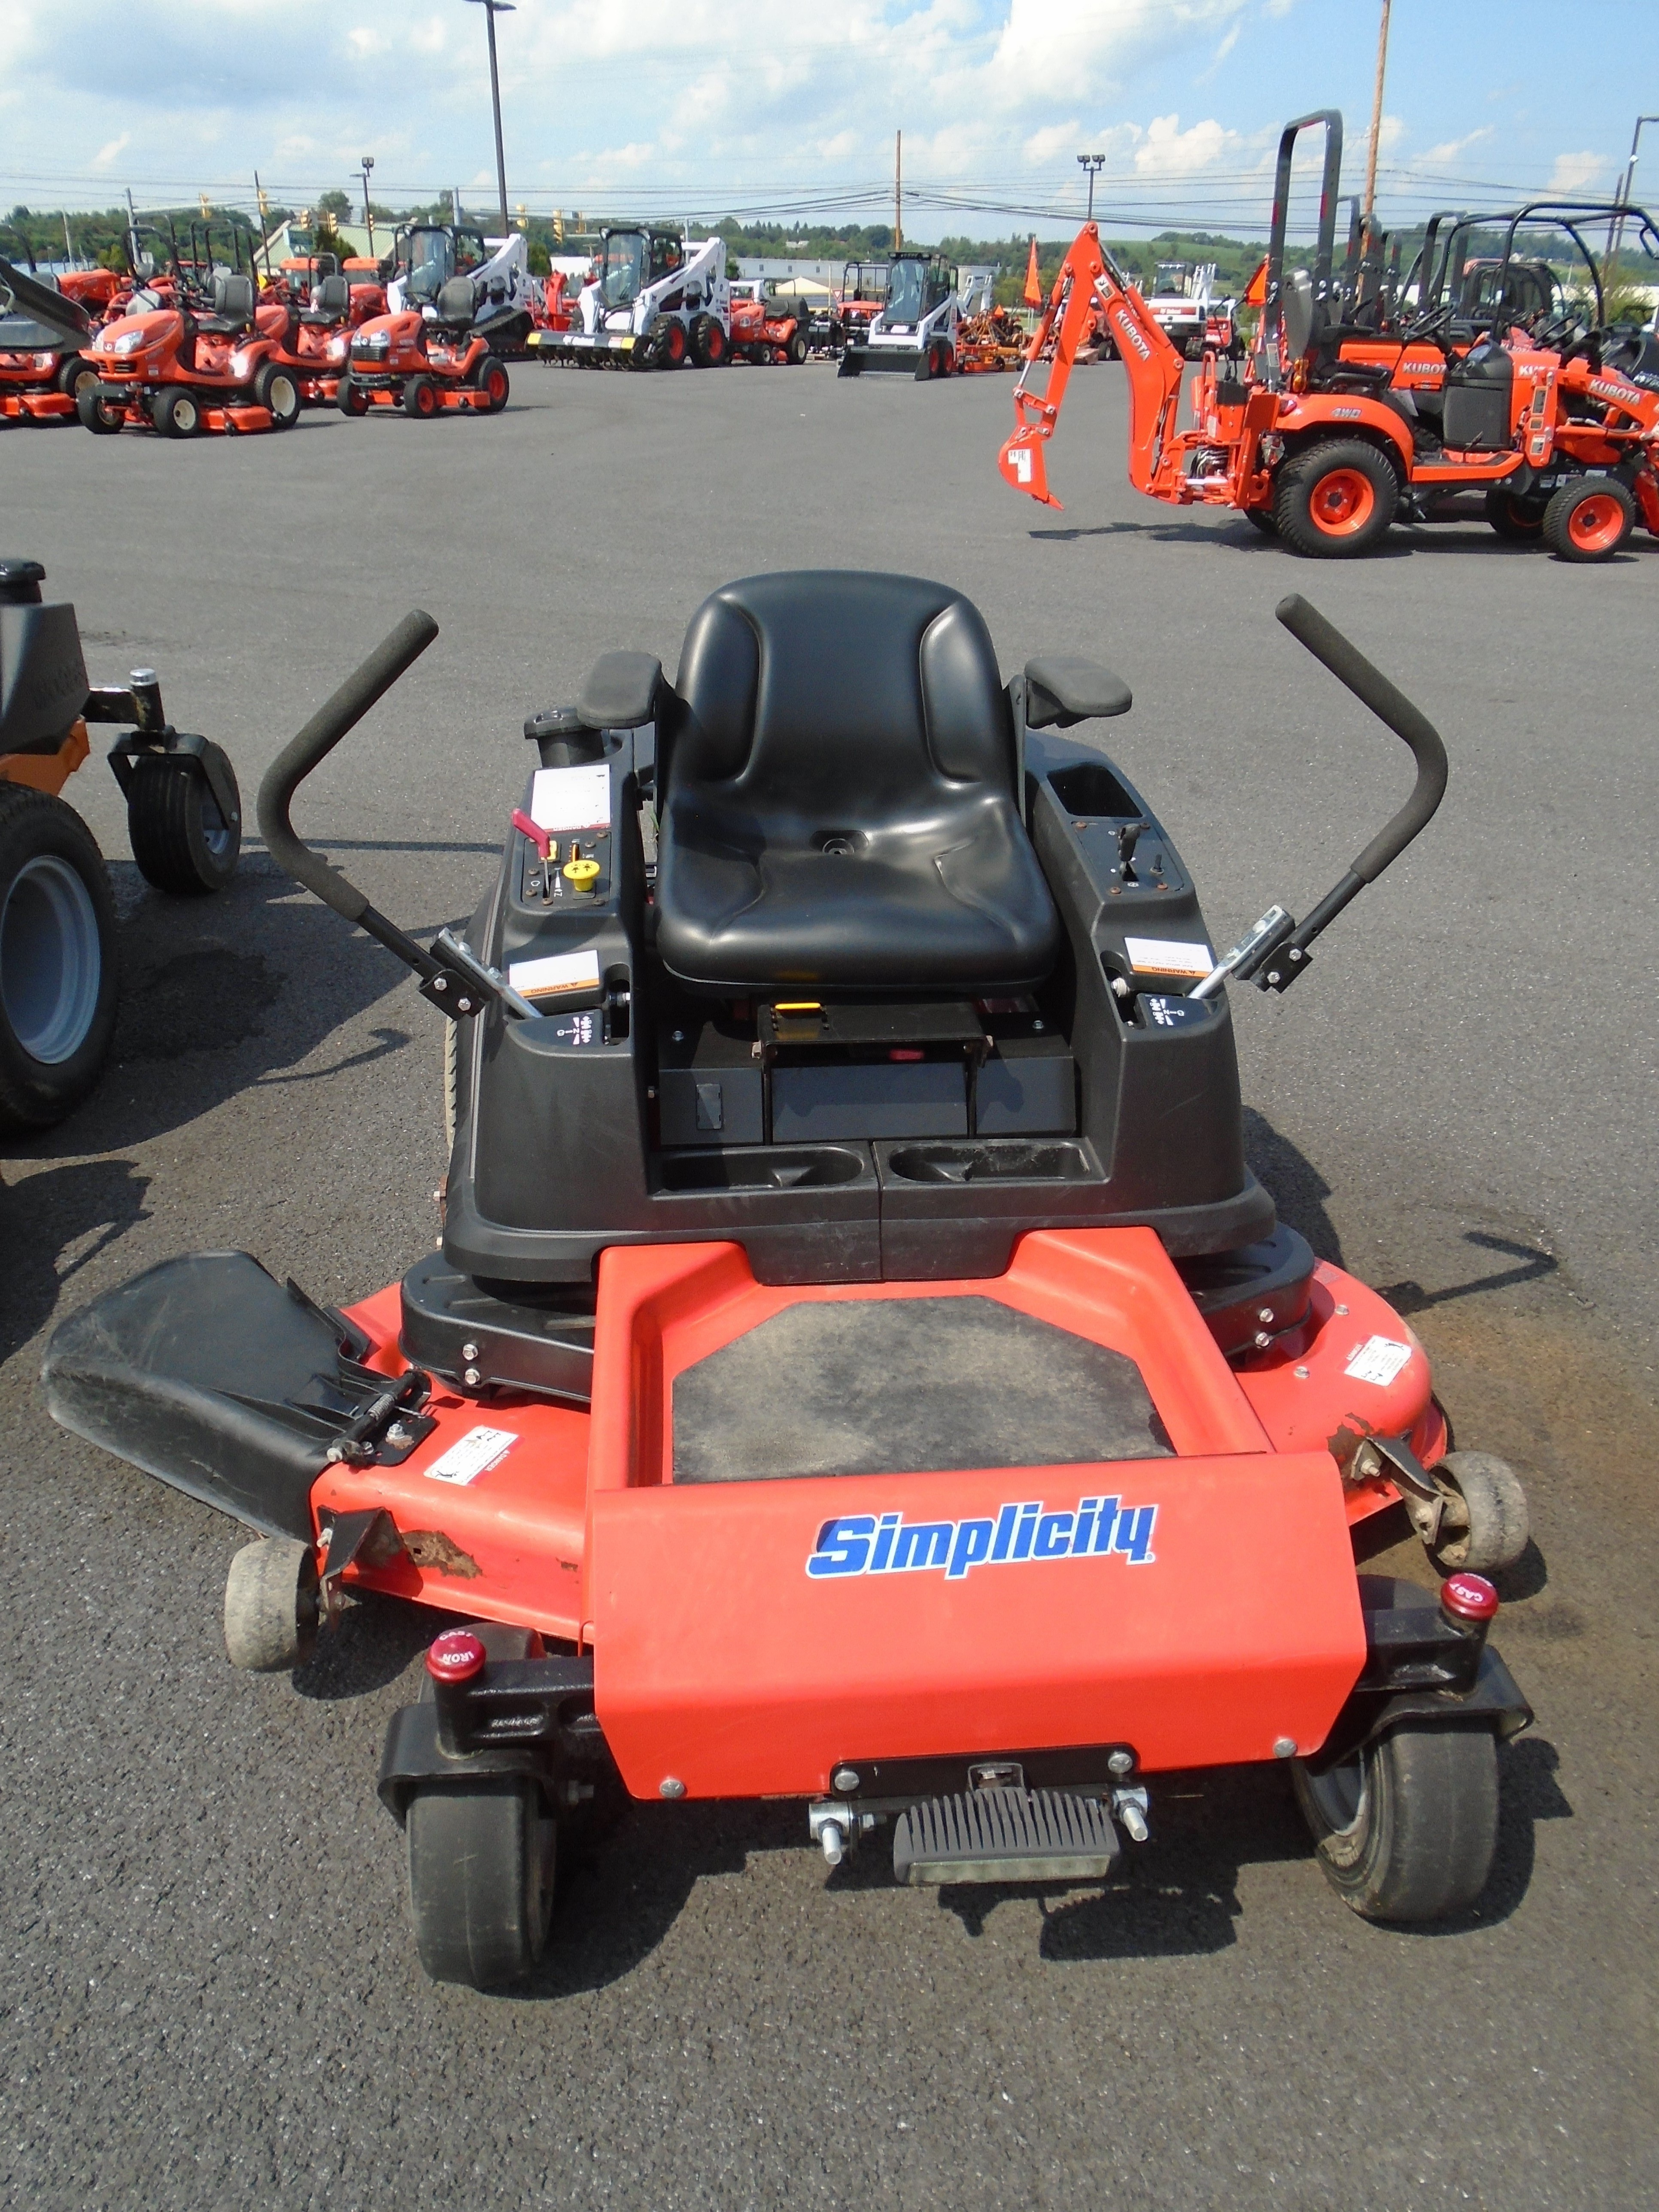 Used, 2014, Simplicity, 21.5/46 ZT1500, Lawn Mowers